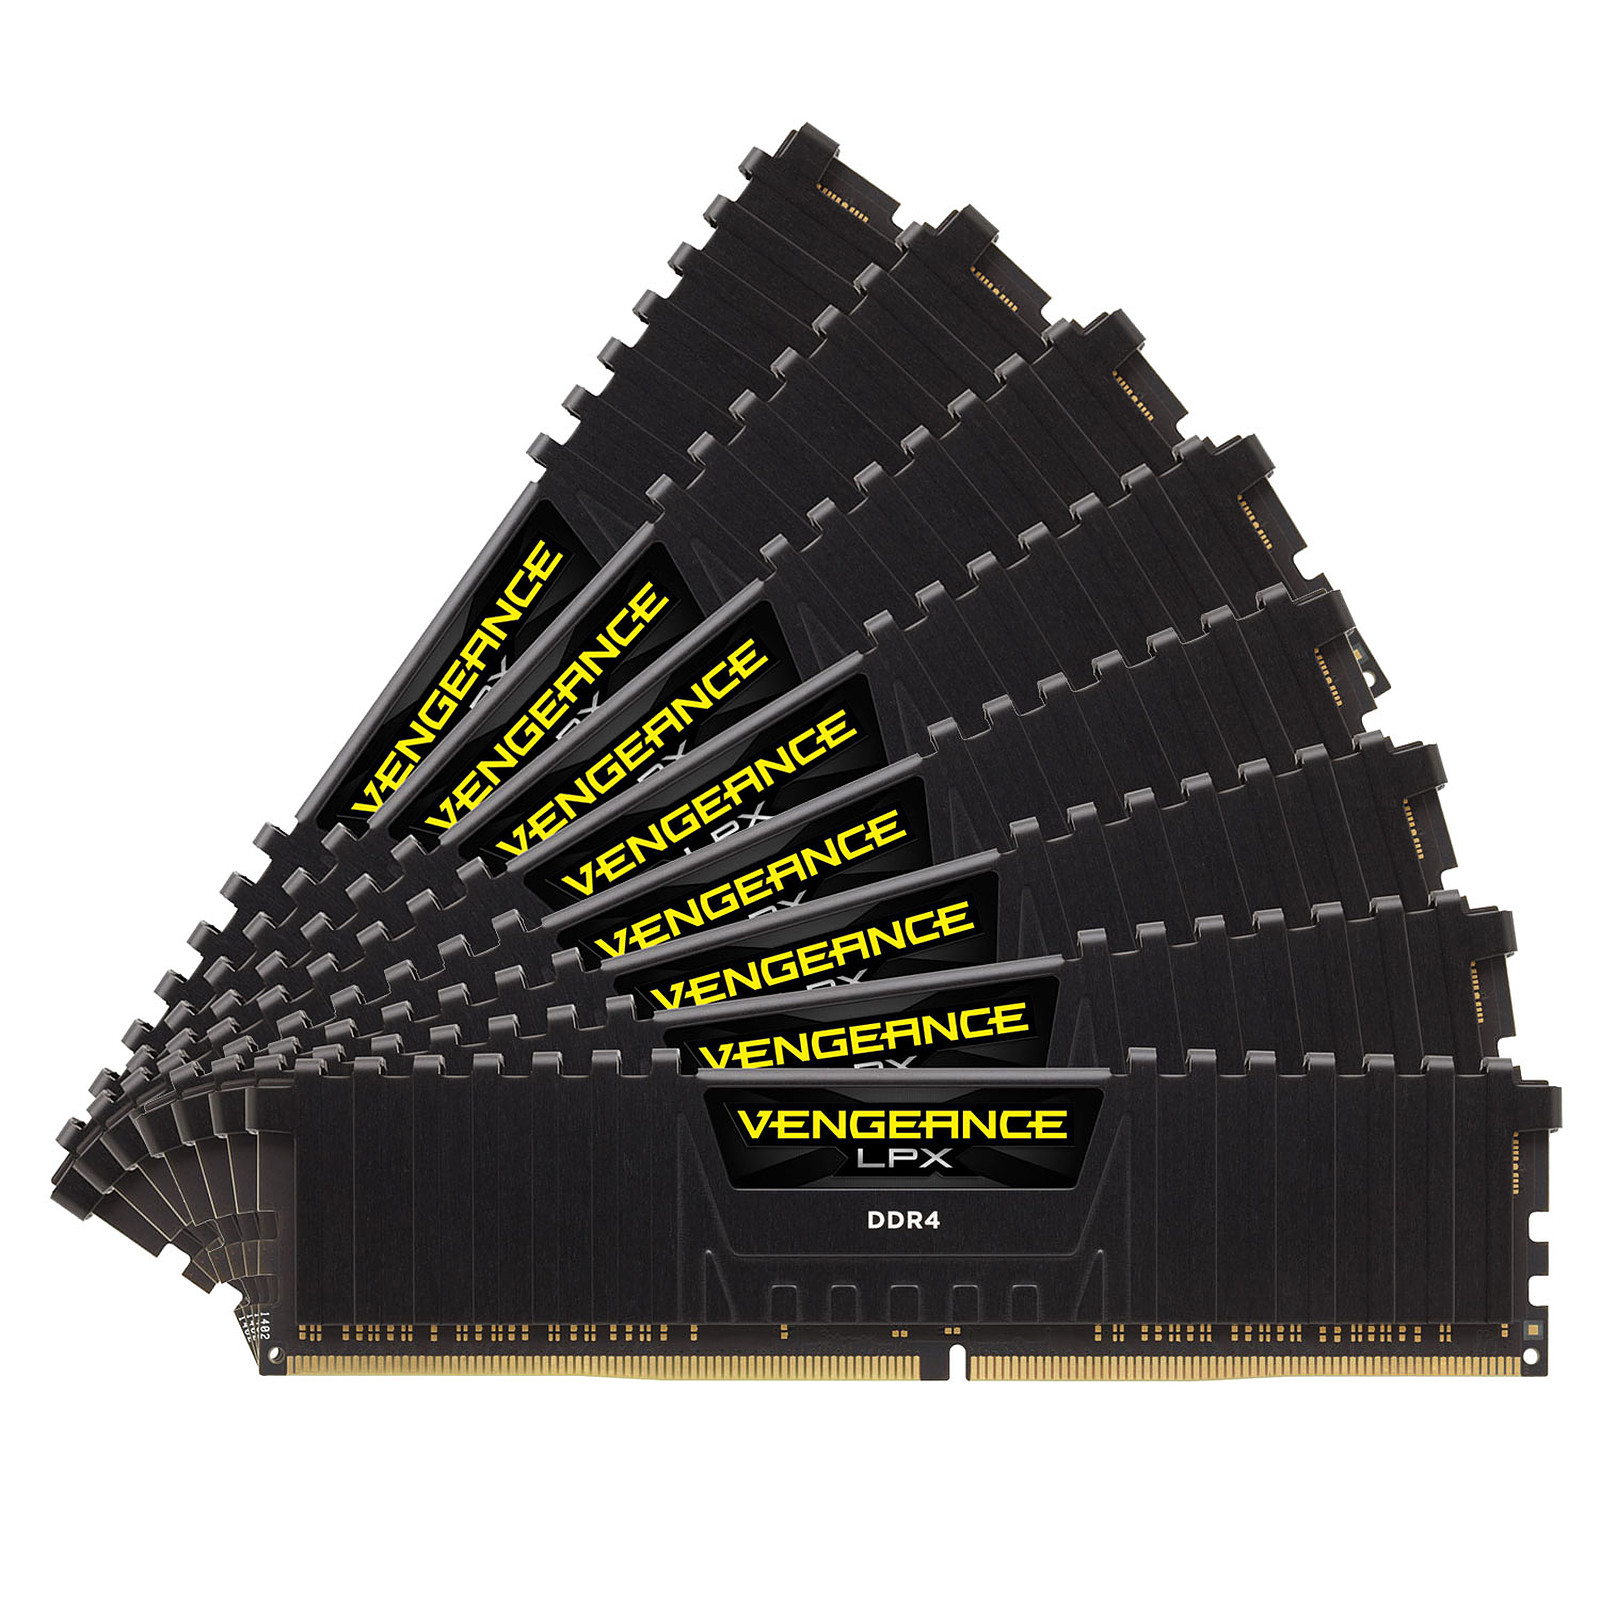 Corsair Vengeance LPX Series Low Profile 128 Go (8x 16 Go) DDR4 2133 MHz CL13